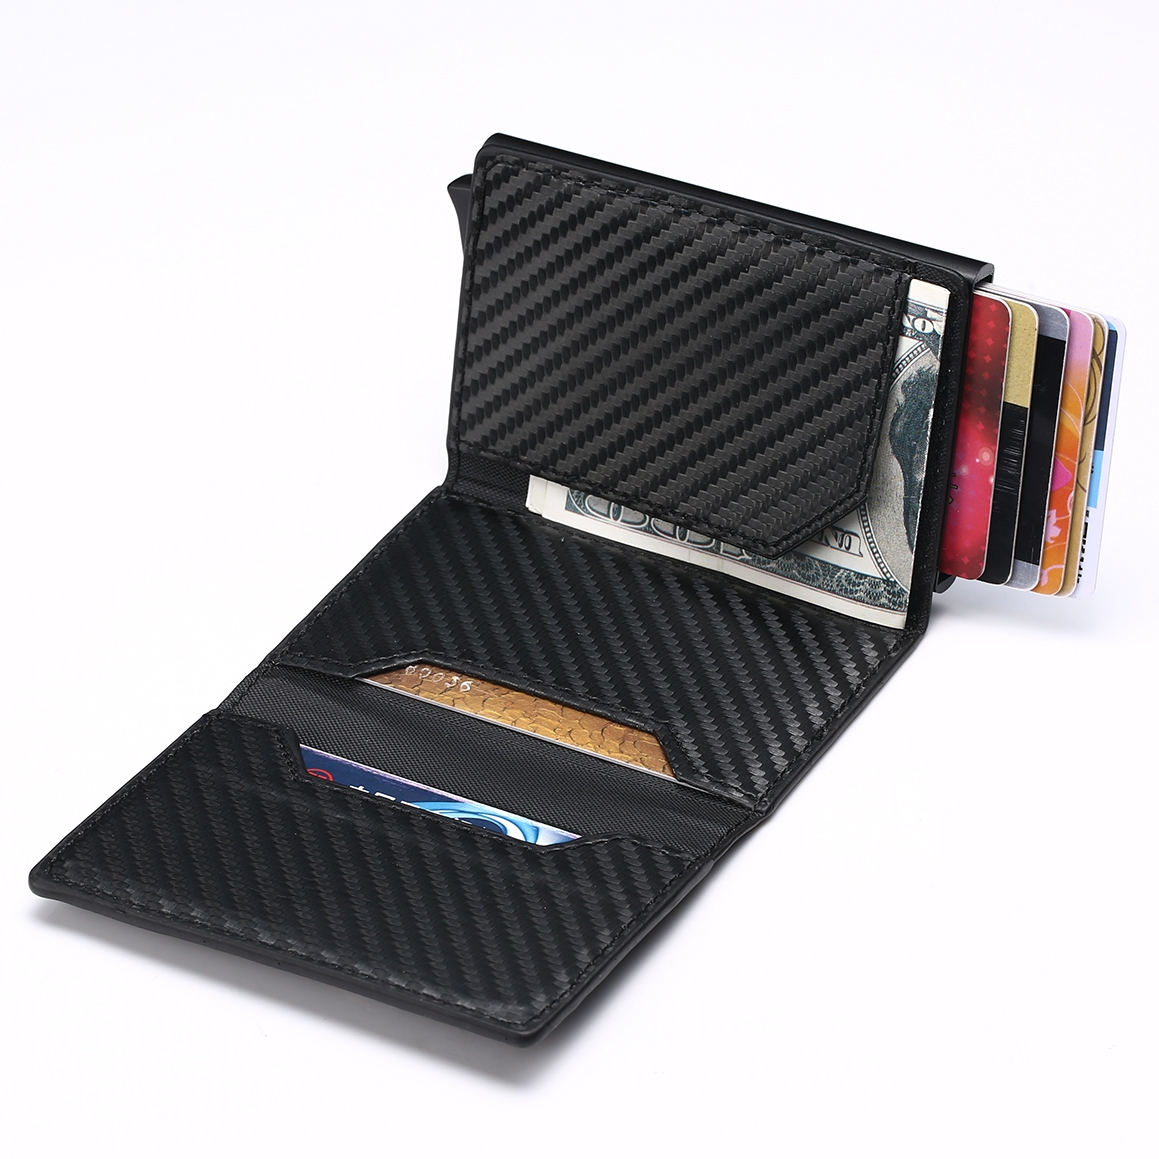 WALLET Aluminum Wallet With PU Leather And Zipper - Blue